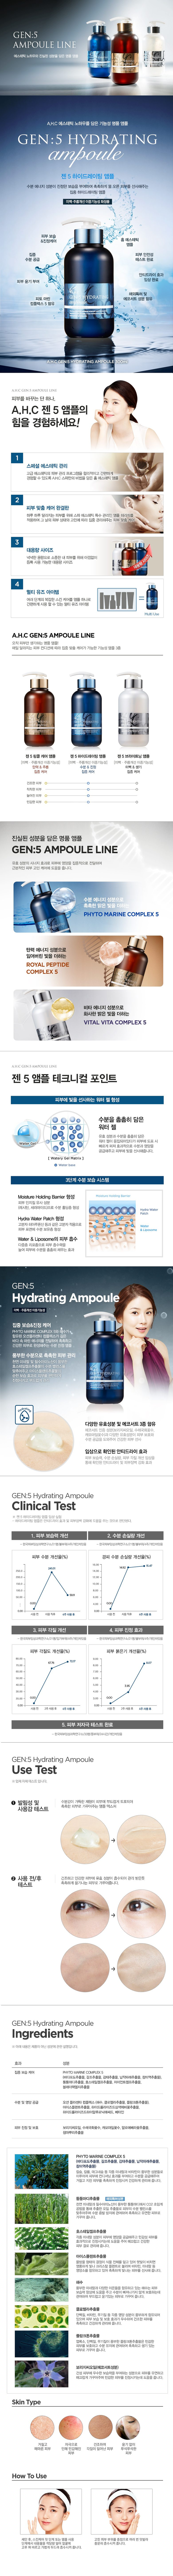 AHC Gen 5 Hydrating Ampoule 50ml malaysia singapore indonesia